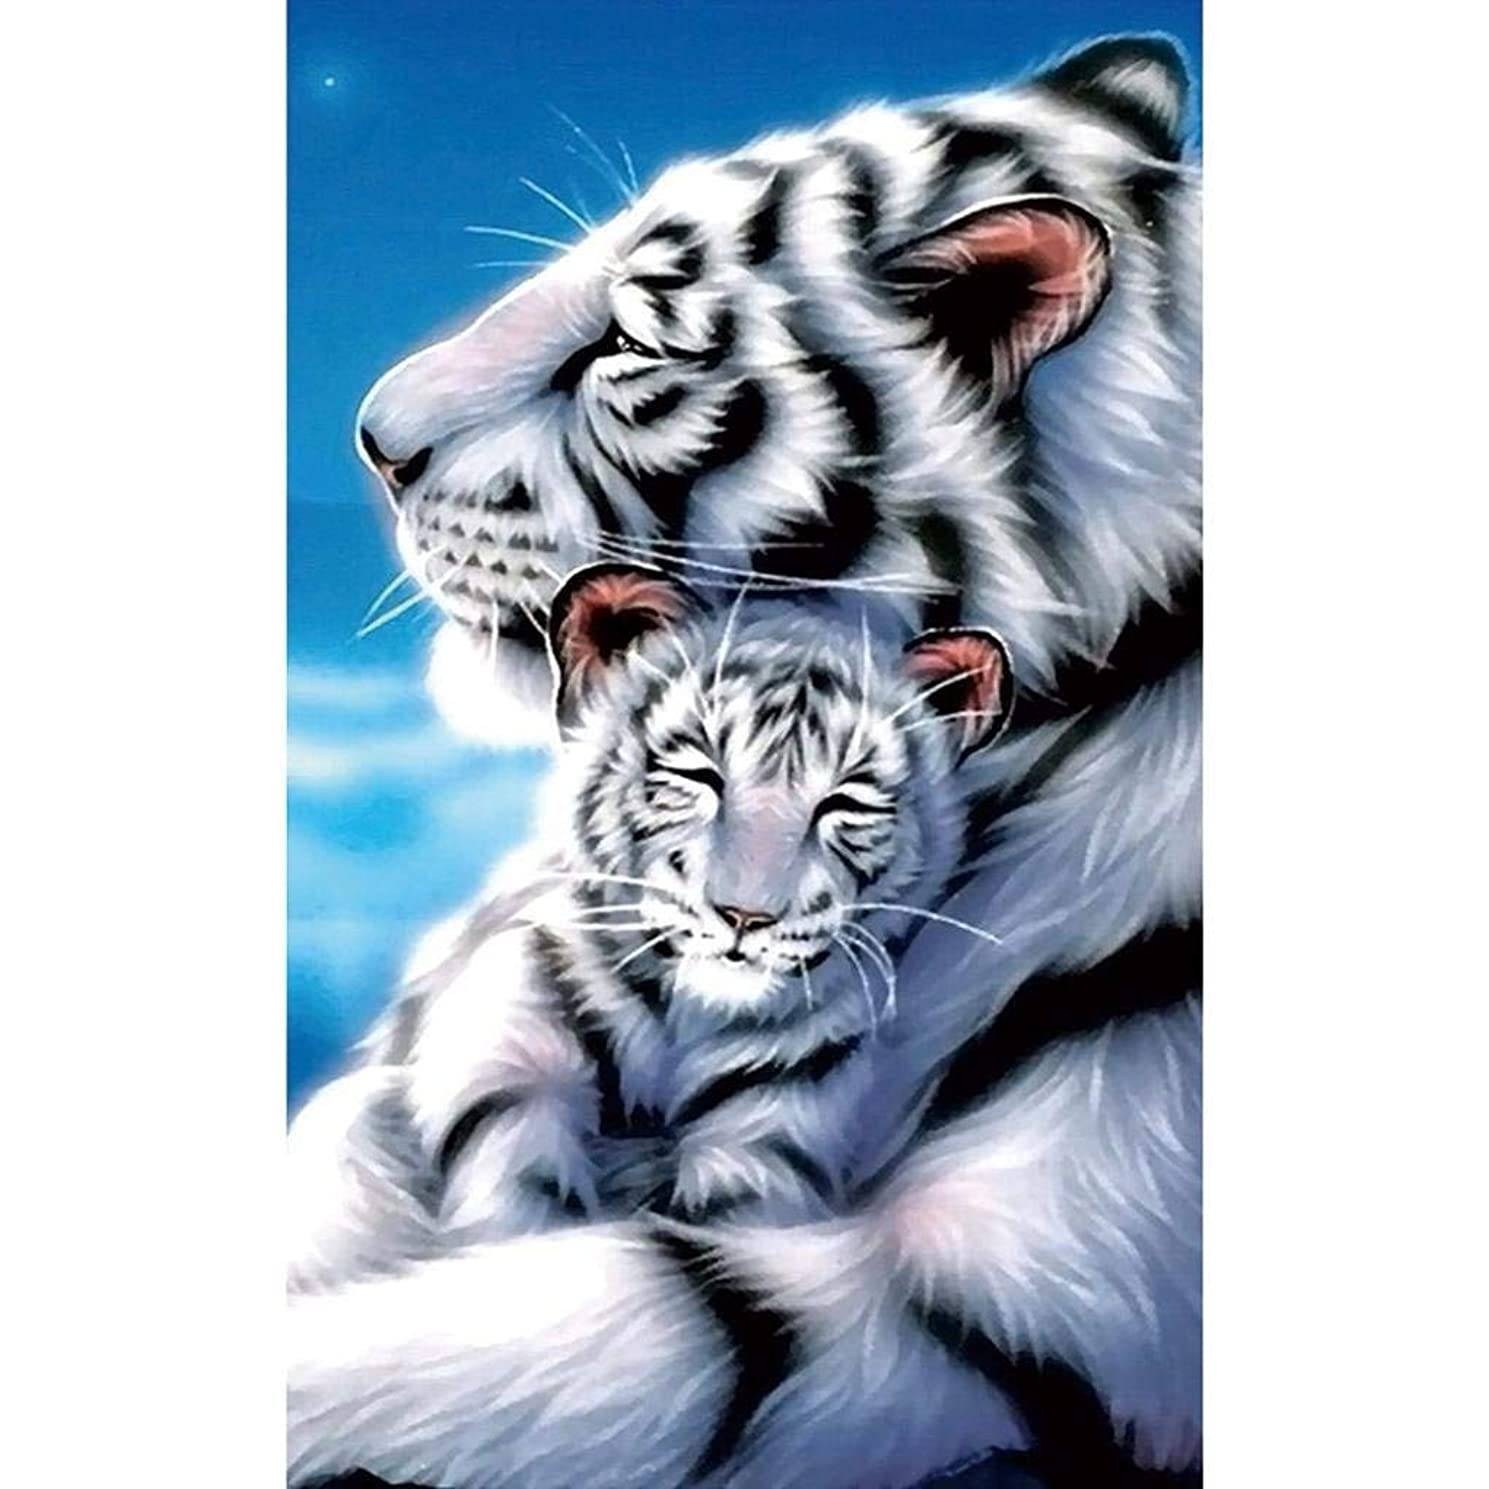 Clearance! 5D Diamond DIY Painting Full Drill Handmade White Tiger Mother Child Under Moonlight Starry Sky Cross Stitch Home Decor Embroidery Kit Nearzstorn (Multicolor, 30x45cm)